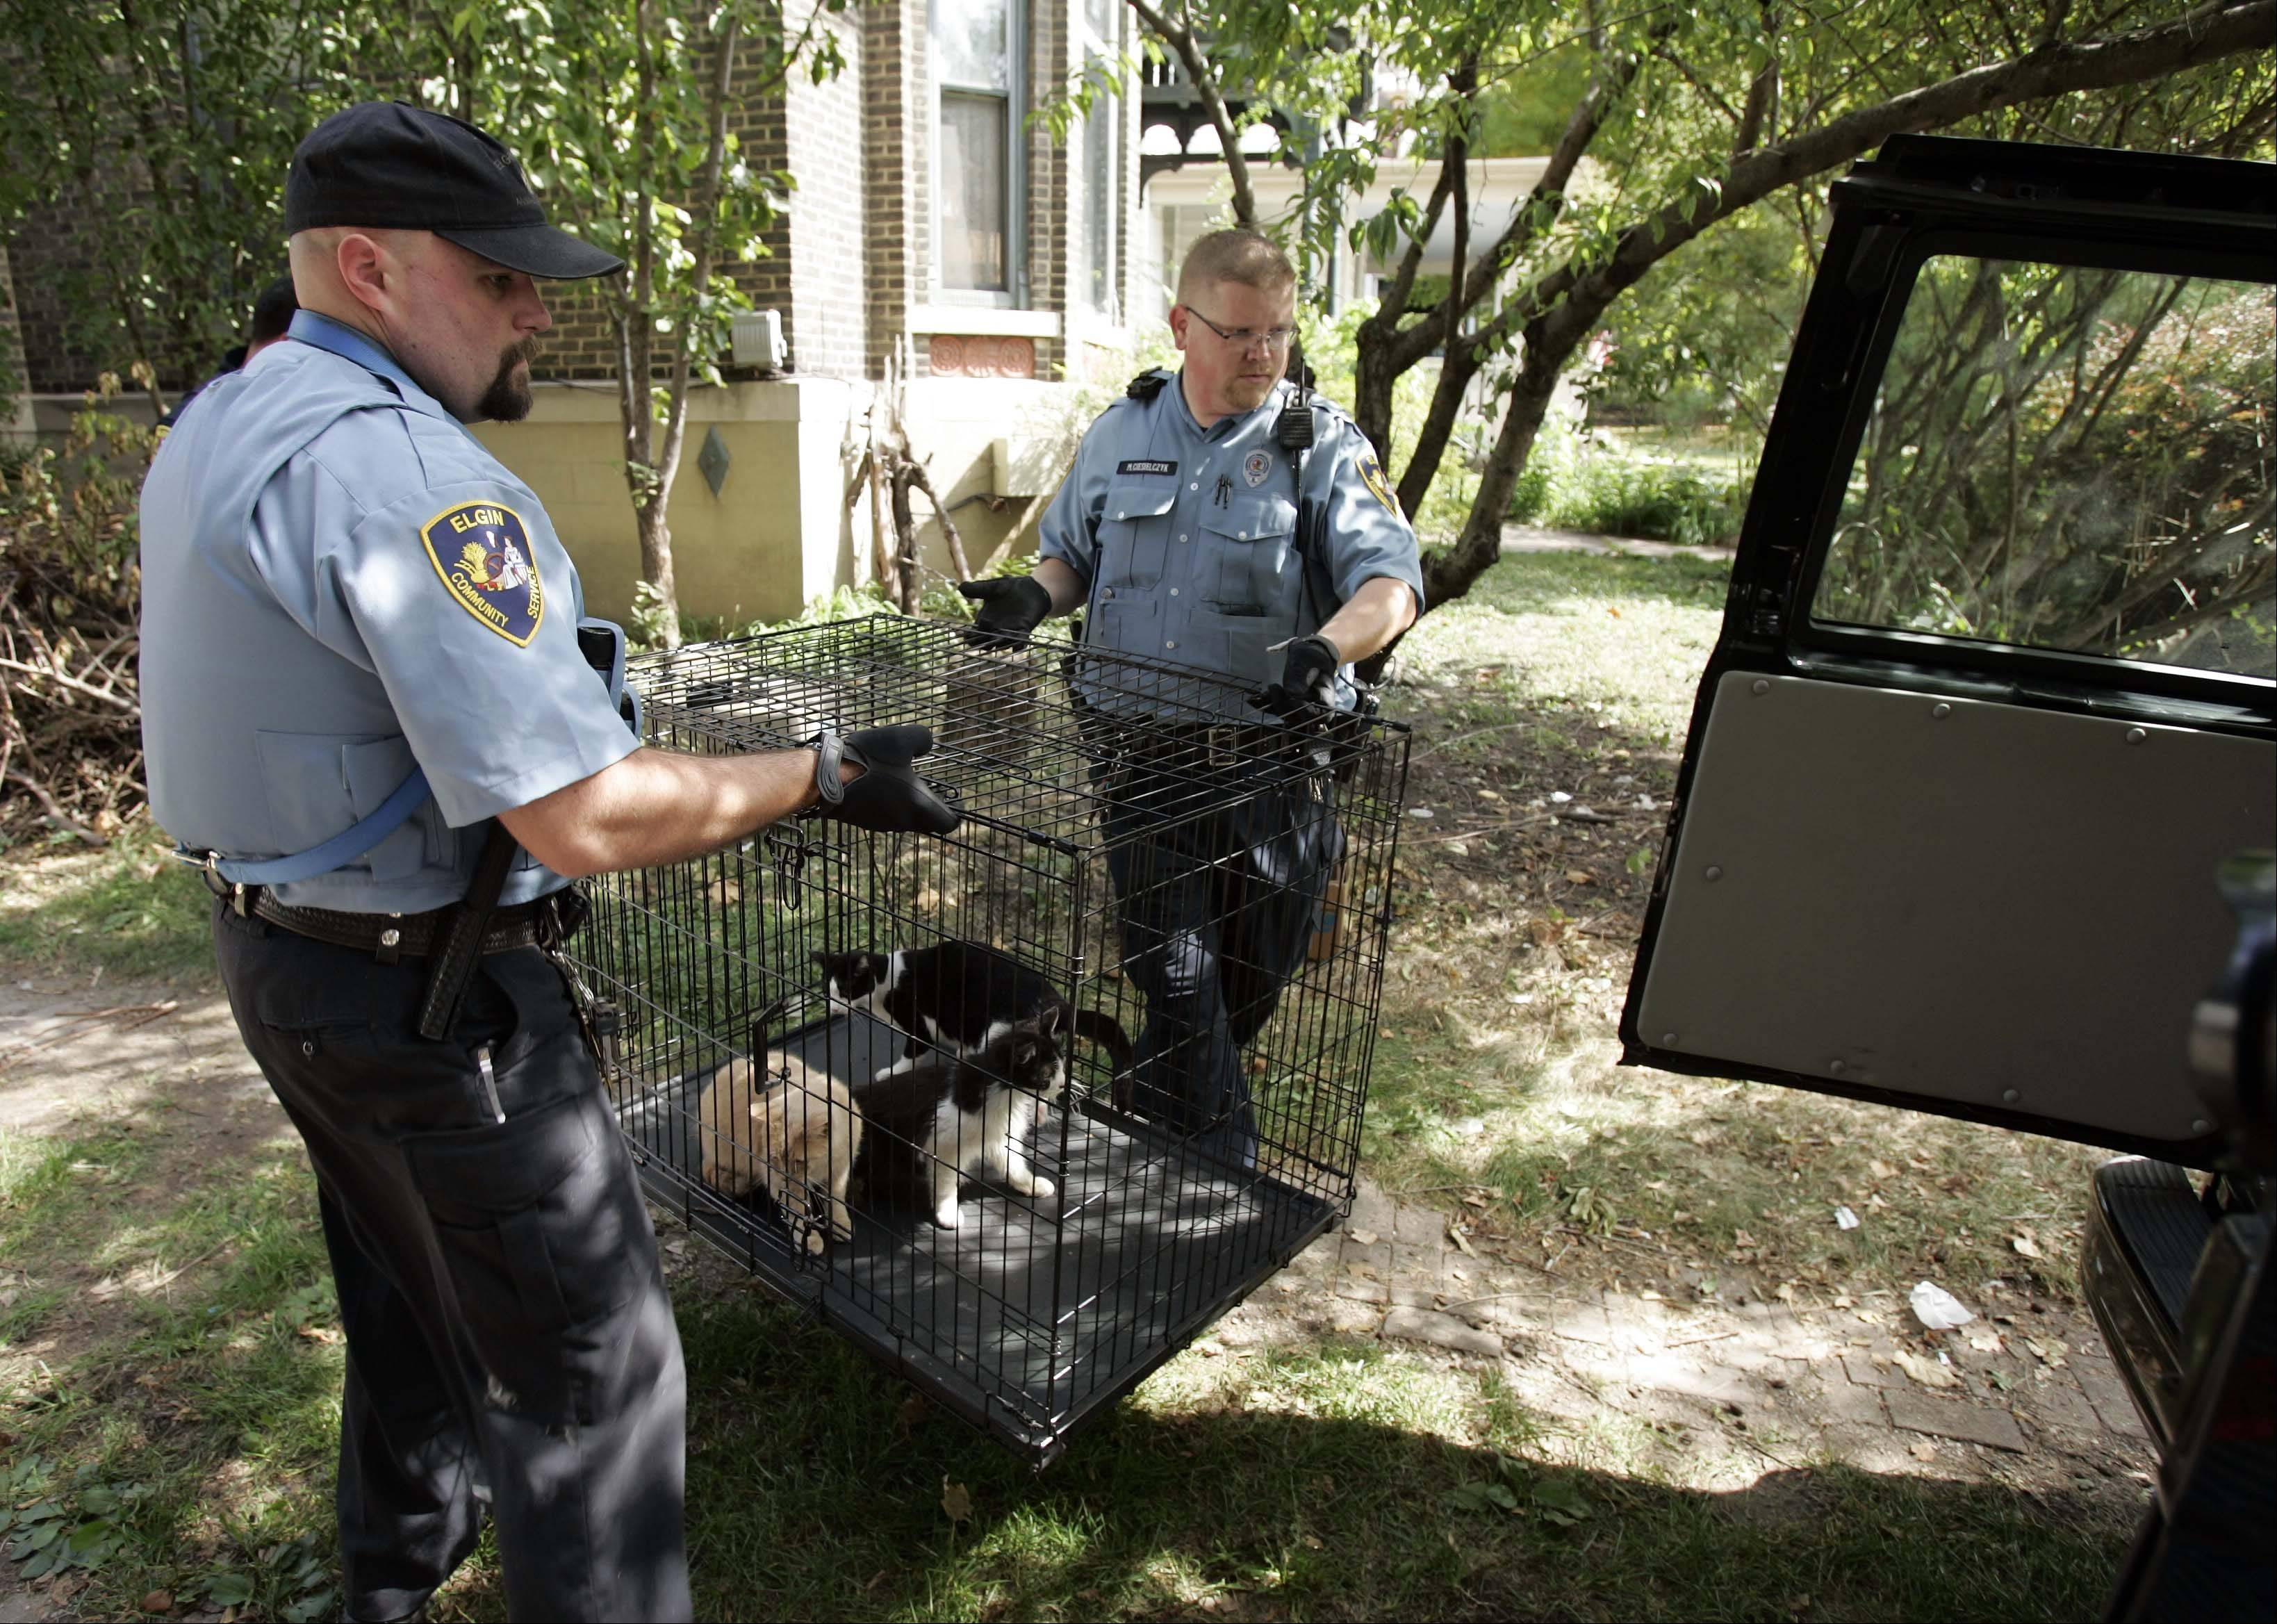 Elgin animal control officers James Rog, left, and Matt Ciesielczyk load a crate with three cats that are now being treated for various infections by a local animal hospital. Officers responded to reports of animal cruelty Wednesday and found an estimated 60 dead cats in a van in the backyard of a home on Villa Street. One dead dog was also found in the van.